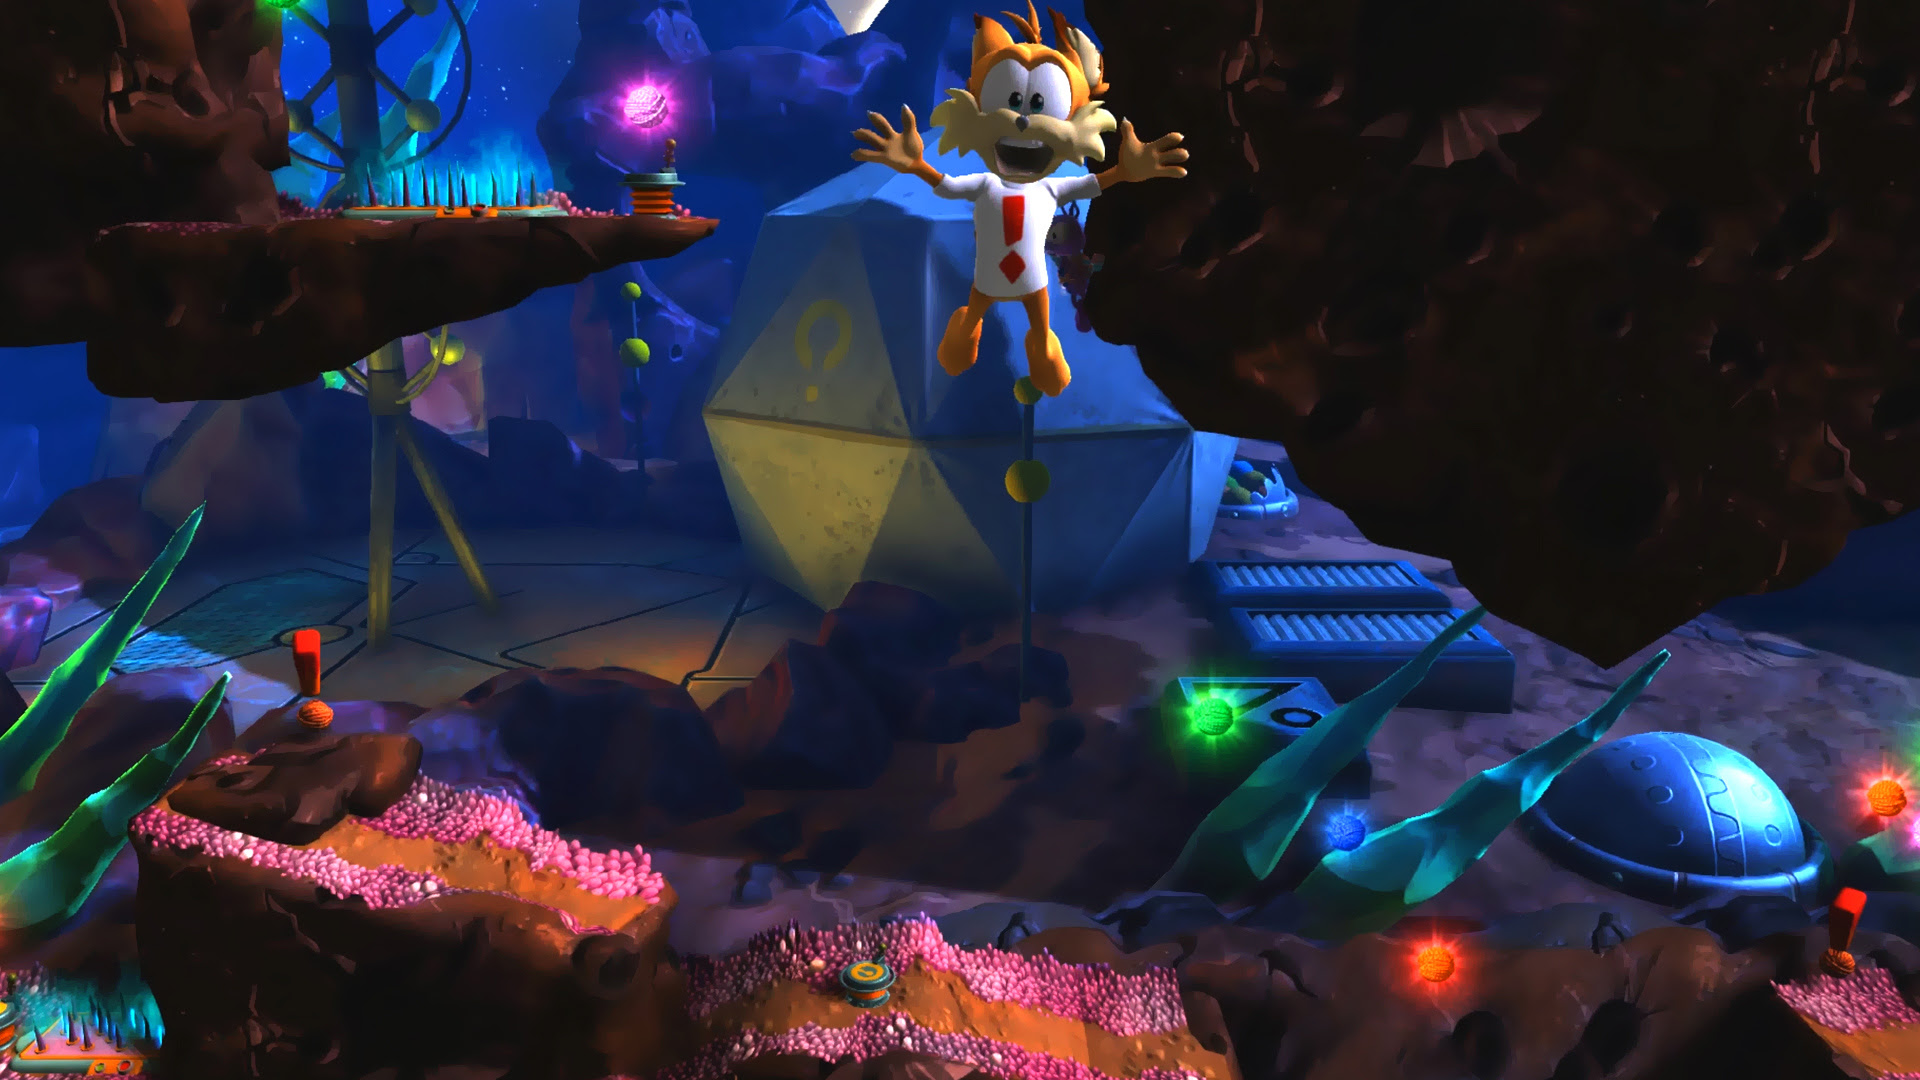 This year *would* give us a new Bubsy game, wouldn't it? screenshot